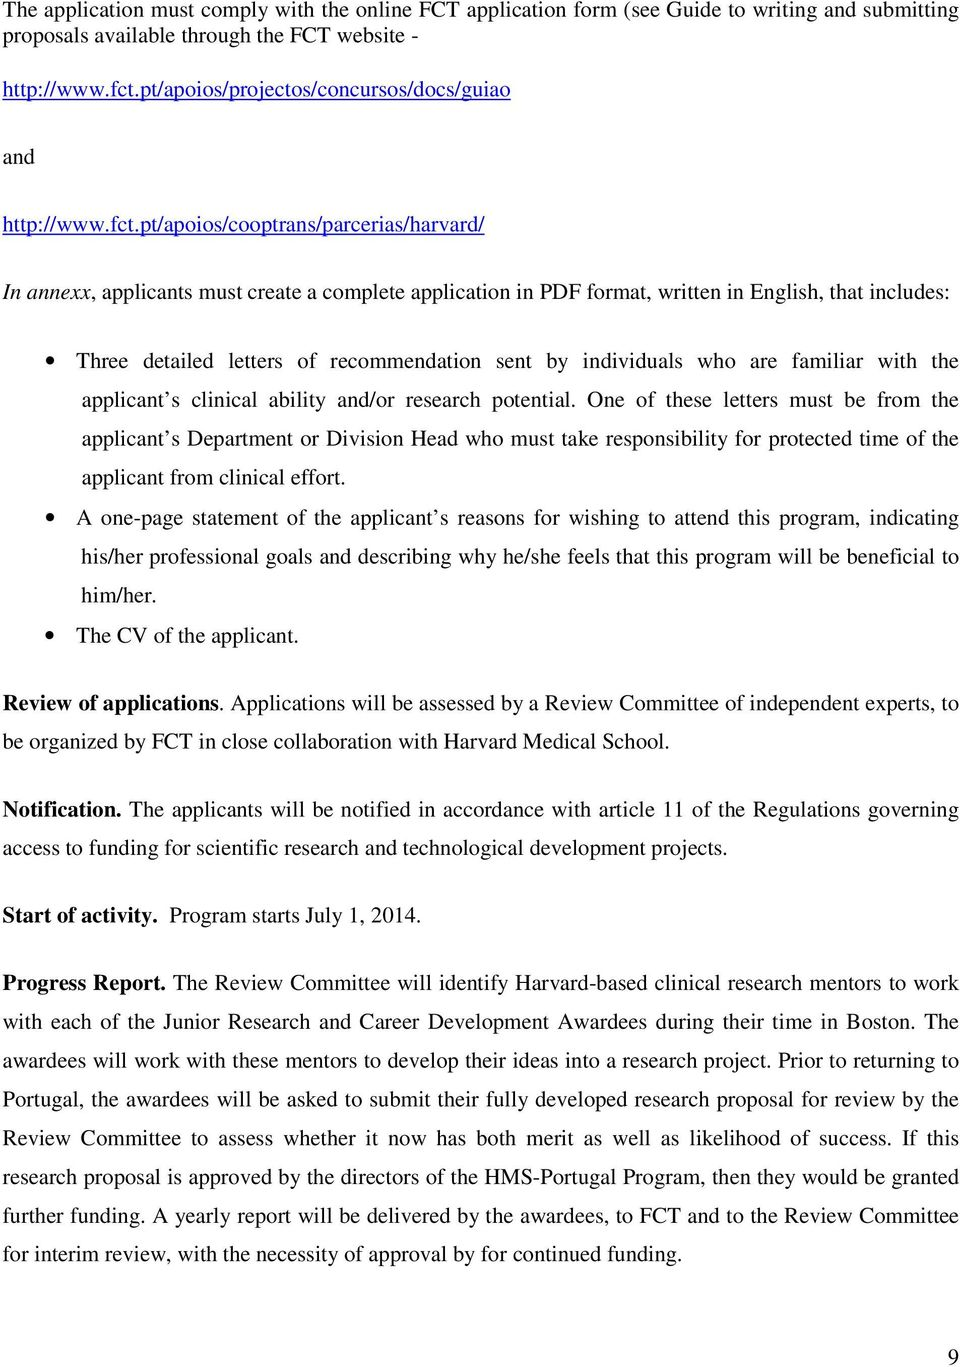 pt/apoios/cooptrans/parcerias/harvard/ In annexx, applicants must create a complete application in PDF format, written in English, that includes: Three detailed letters of recommendation sent by